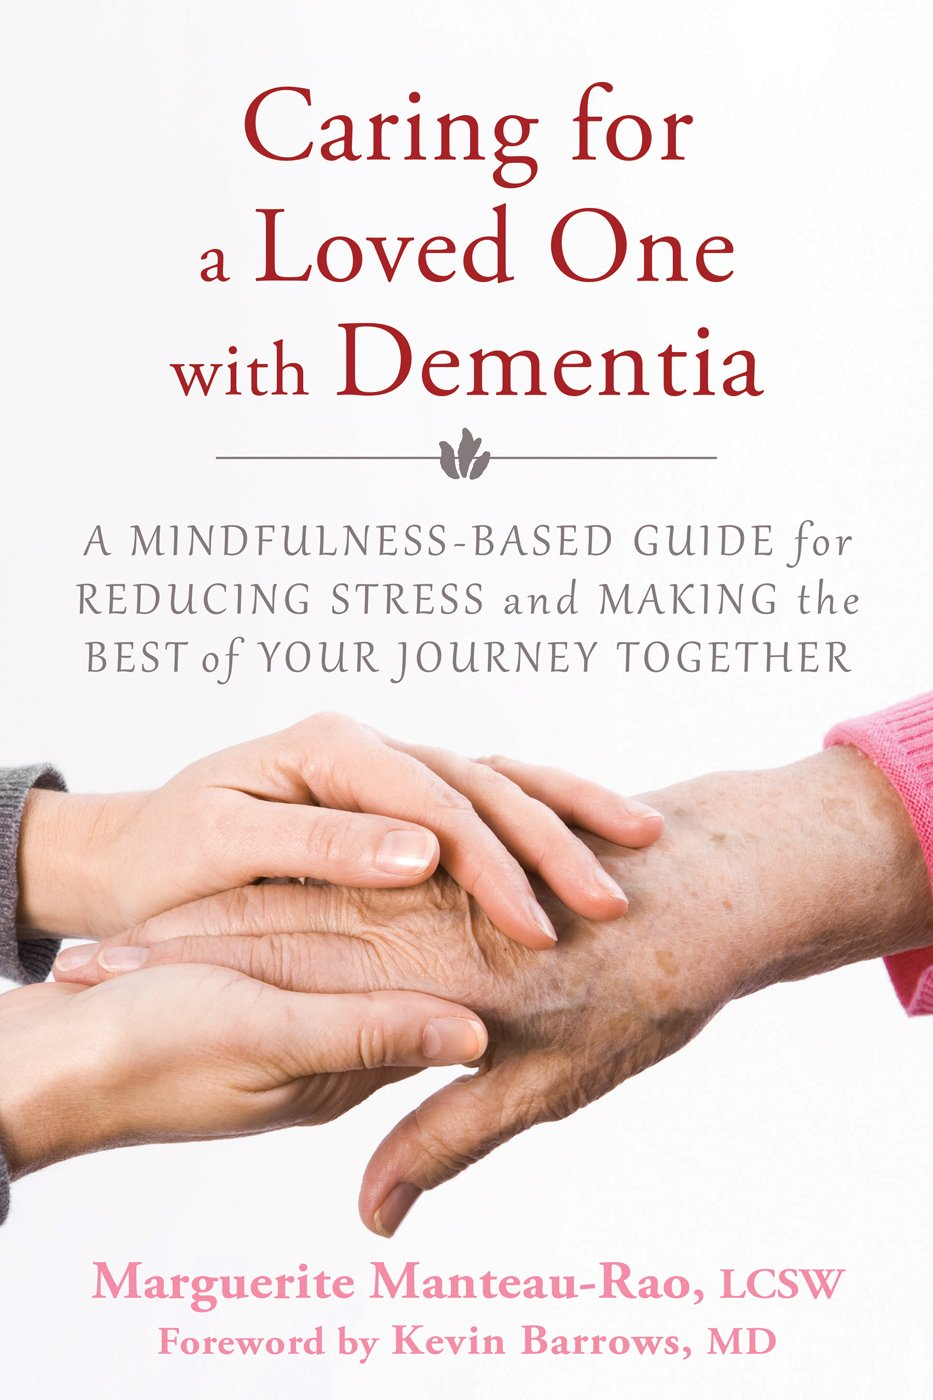 Caring Loved One Dementia Mindfulness Based product image